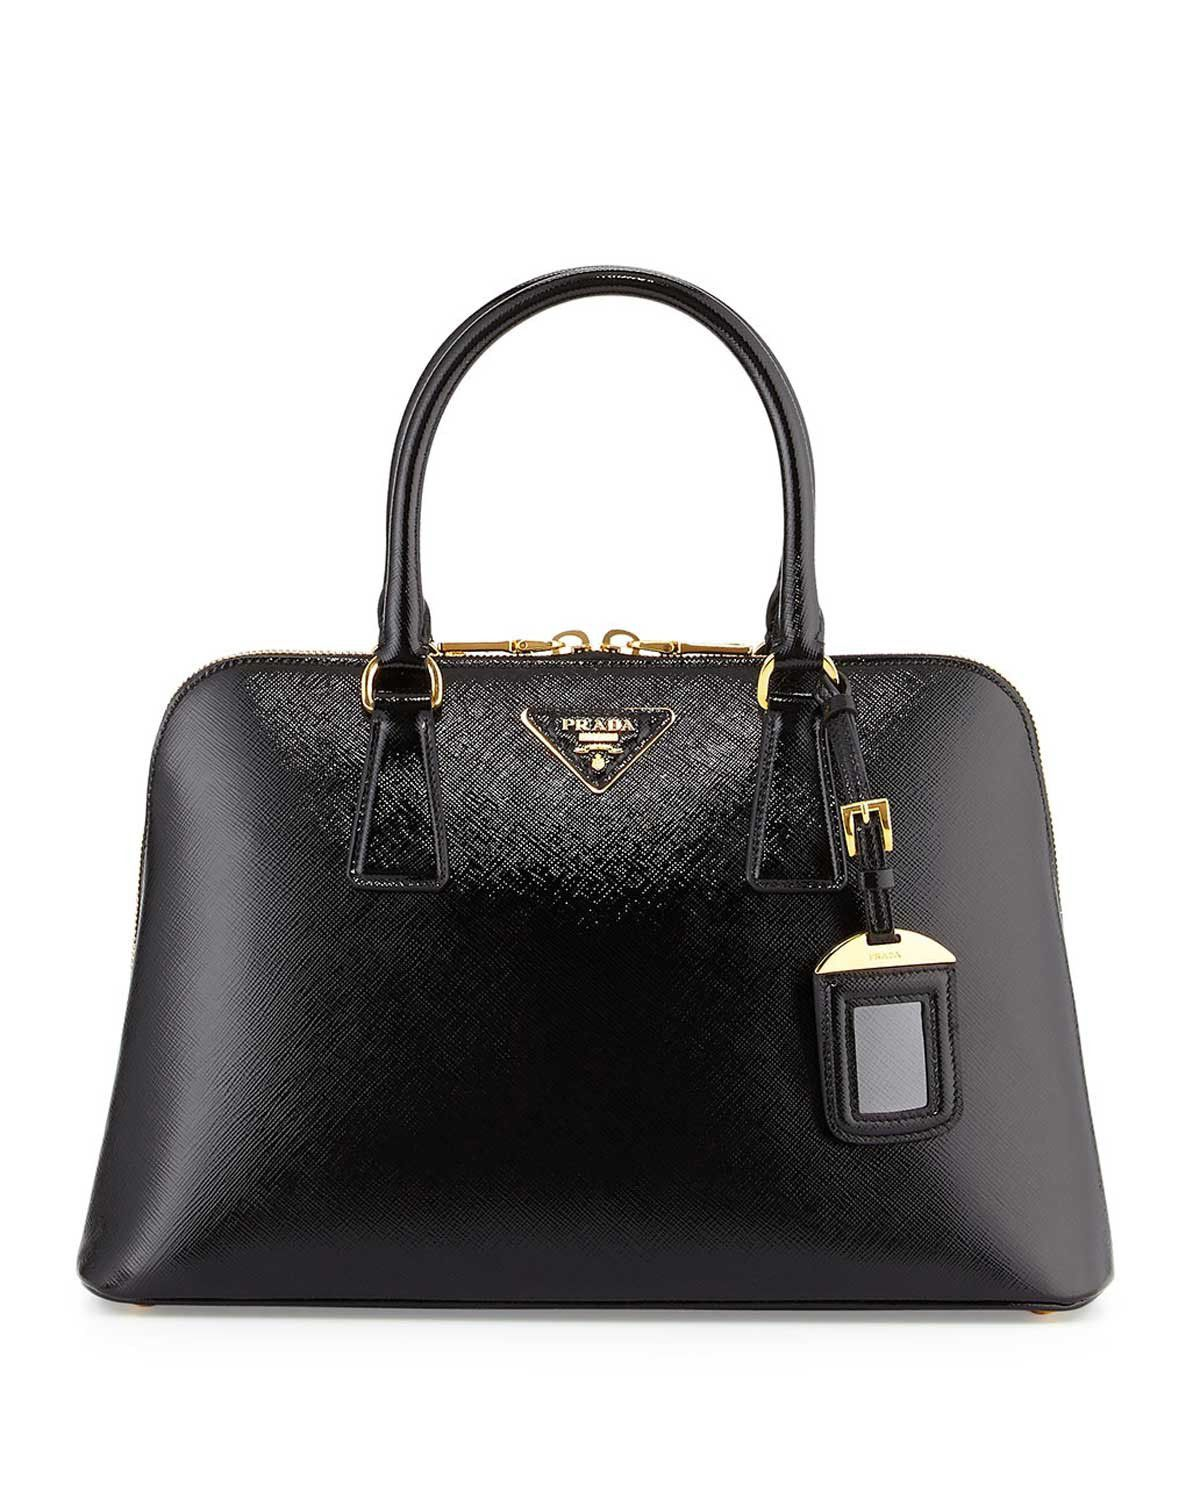 acde7b2b5c6fa8 Prada Saffiano Double-Handle Small Trapezoid Tote Bag Black #bagsandpurses